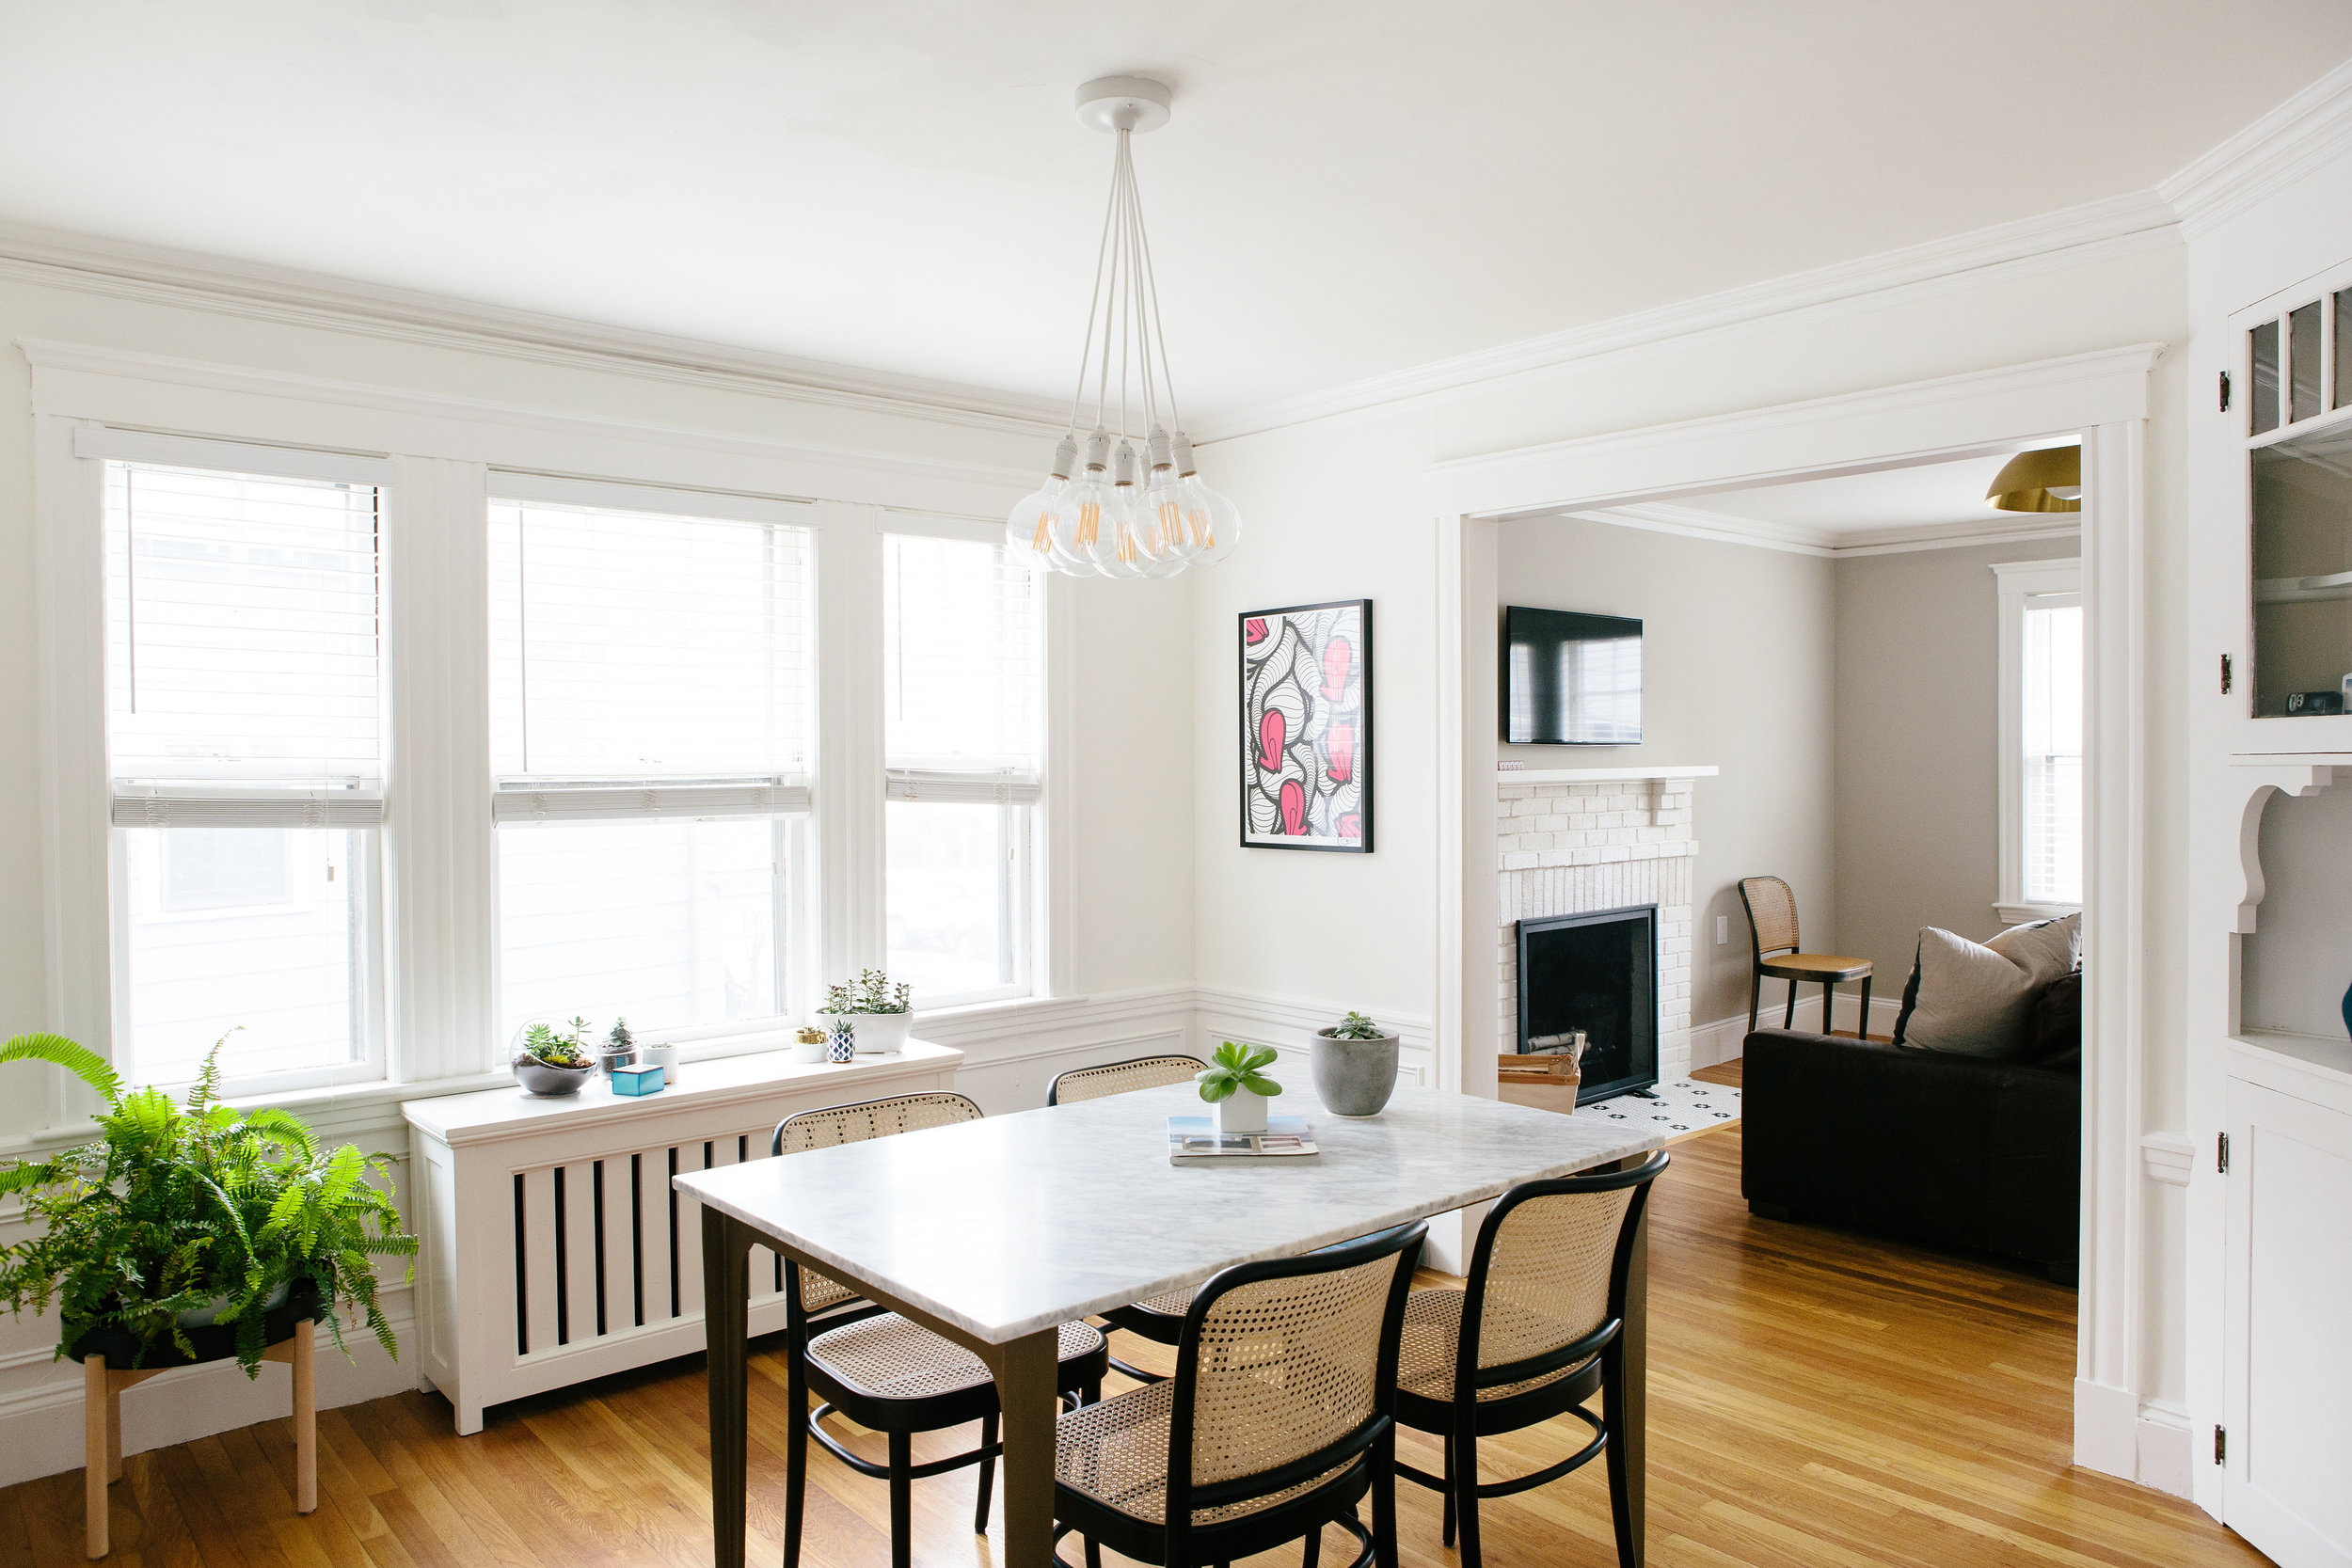 The Castleton Project - Originally built in 1923, the Castleton Project is the top floor of a two family home location in the Jamaica Plain Neighborhood of Boston. When CommonGrid began the project, the apartment had not had any major updates since 1995.